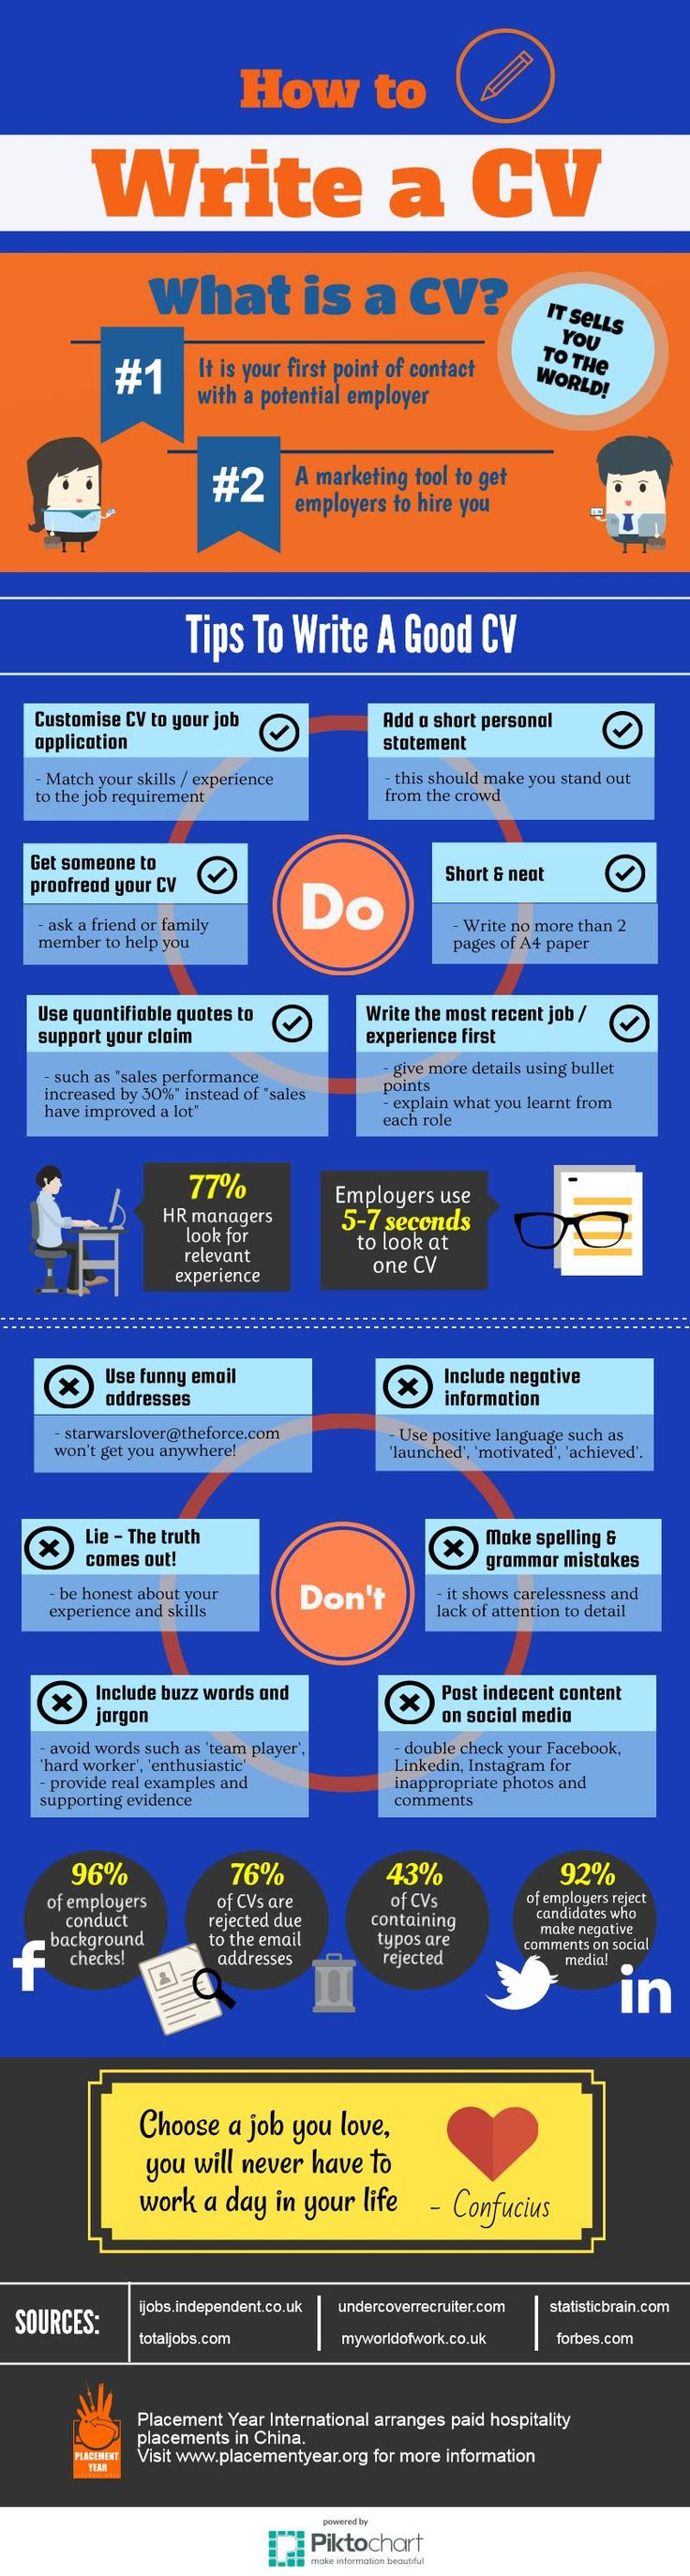 How To Write a CV #Infographic #Career #Resume